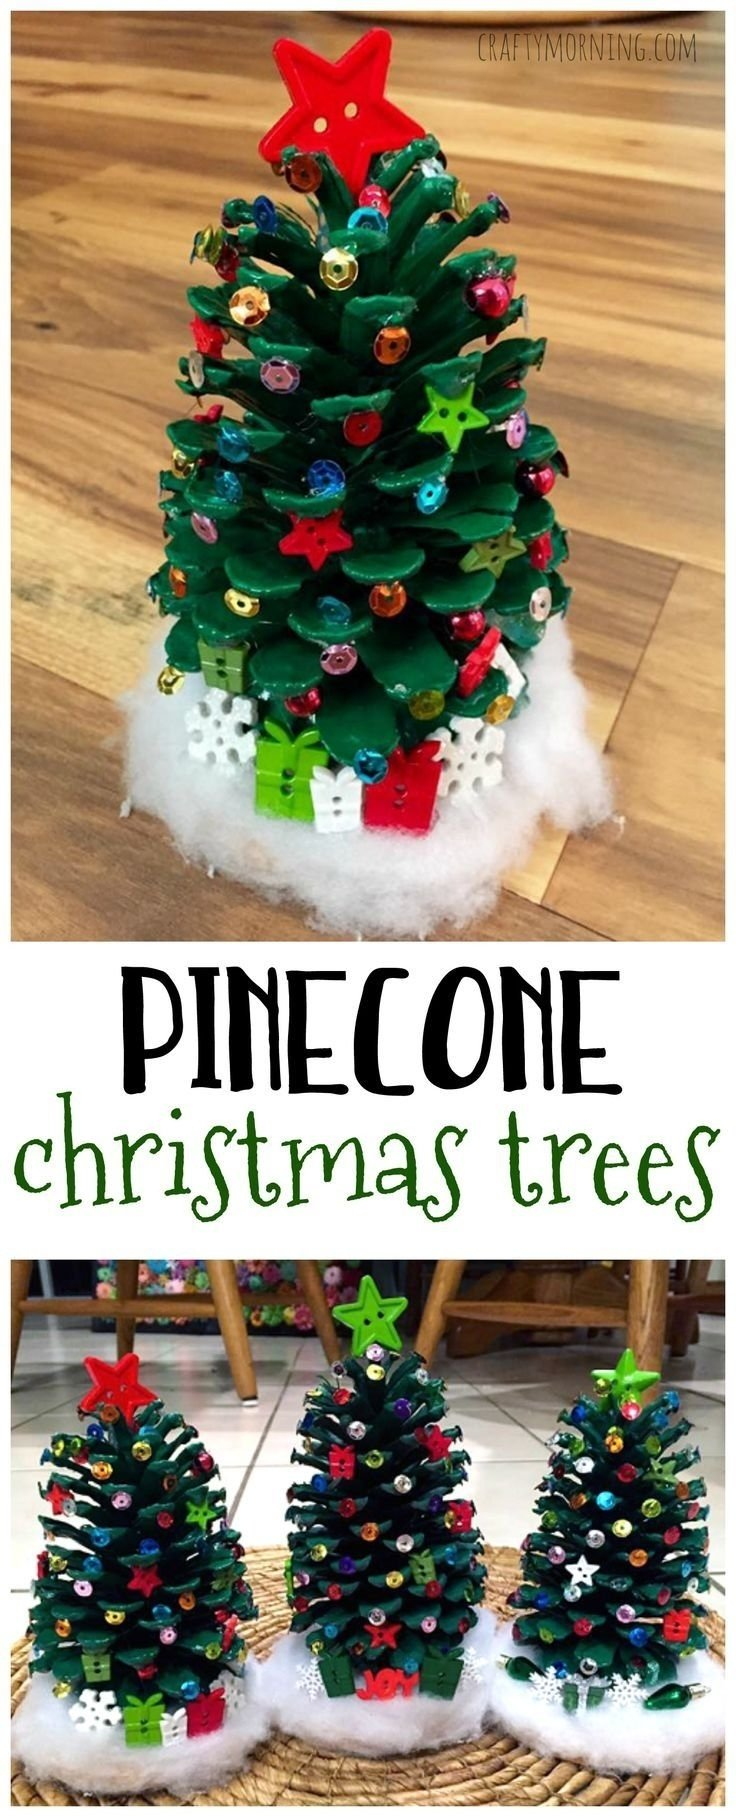 10 Stunning Christmas Picture Ideas For Children christmas craft ideas for children to make craft get ideas 1 2021